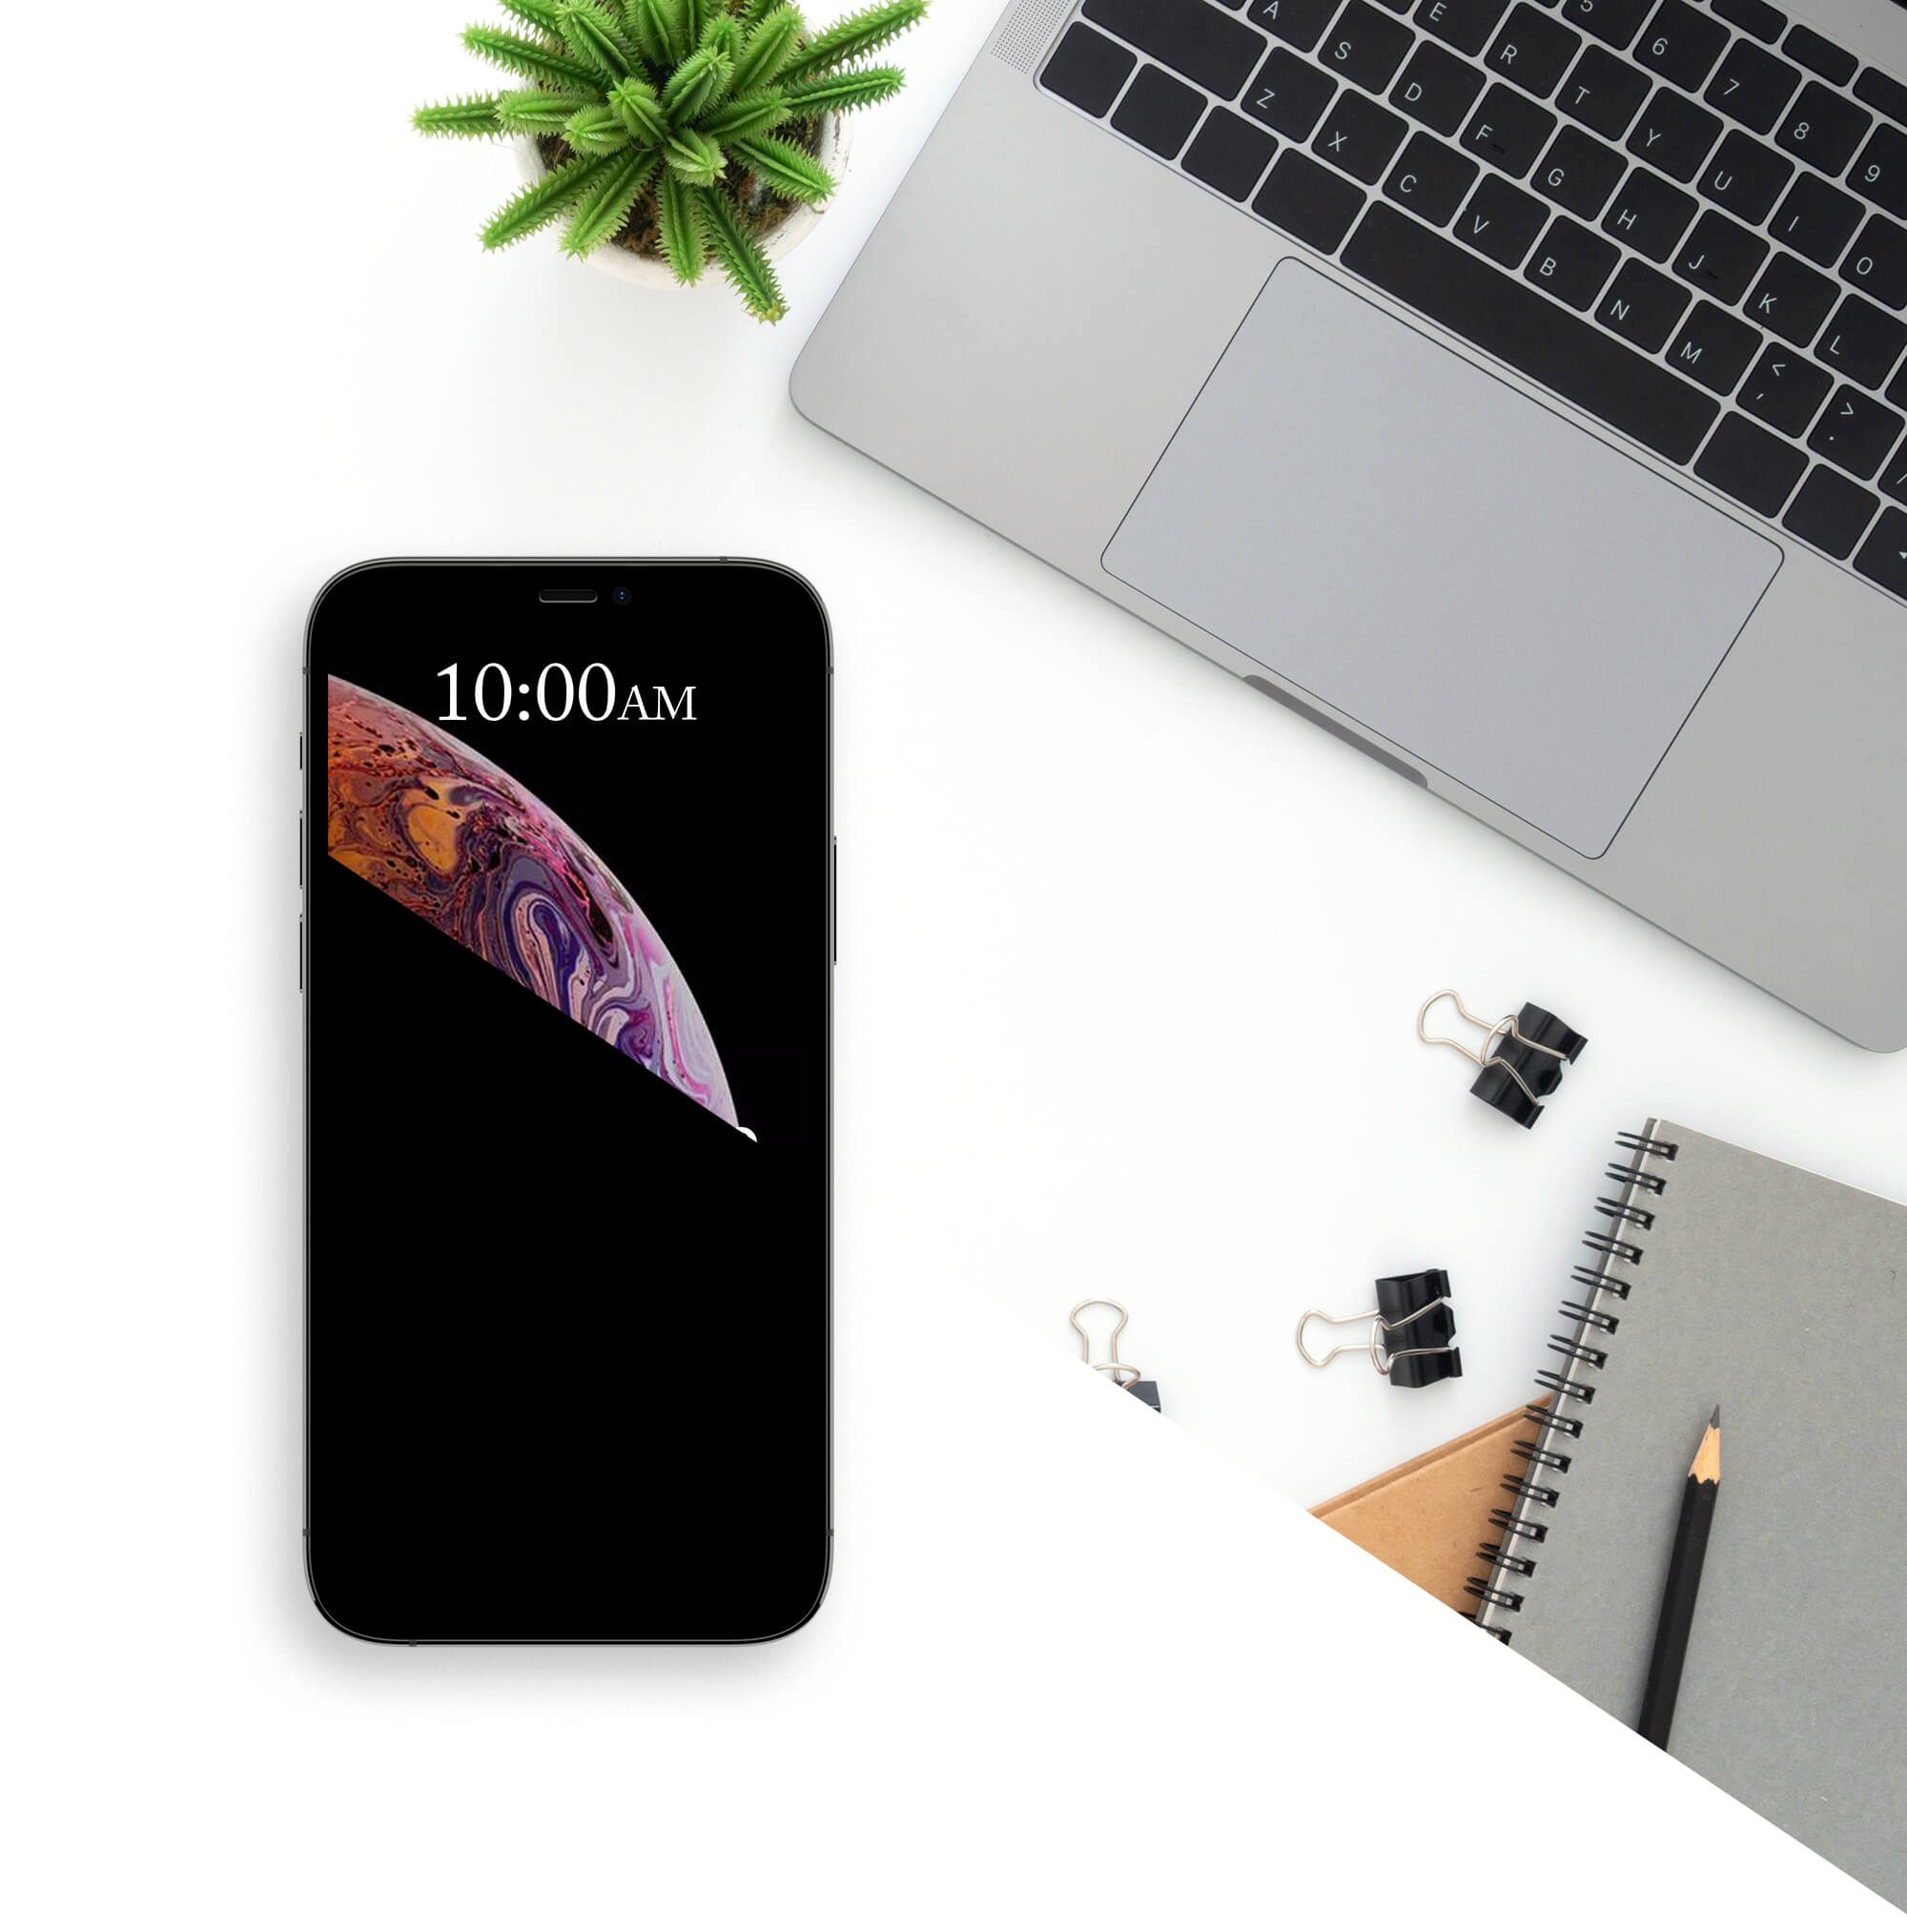 Editable Free Black iPhone Mockup PSD Template